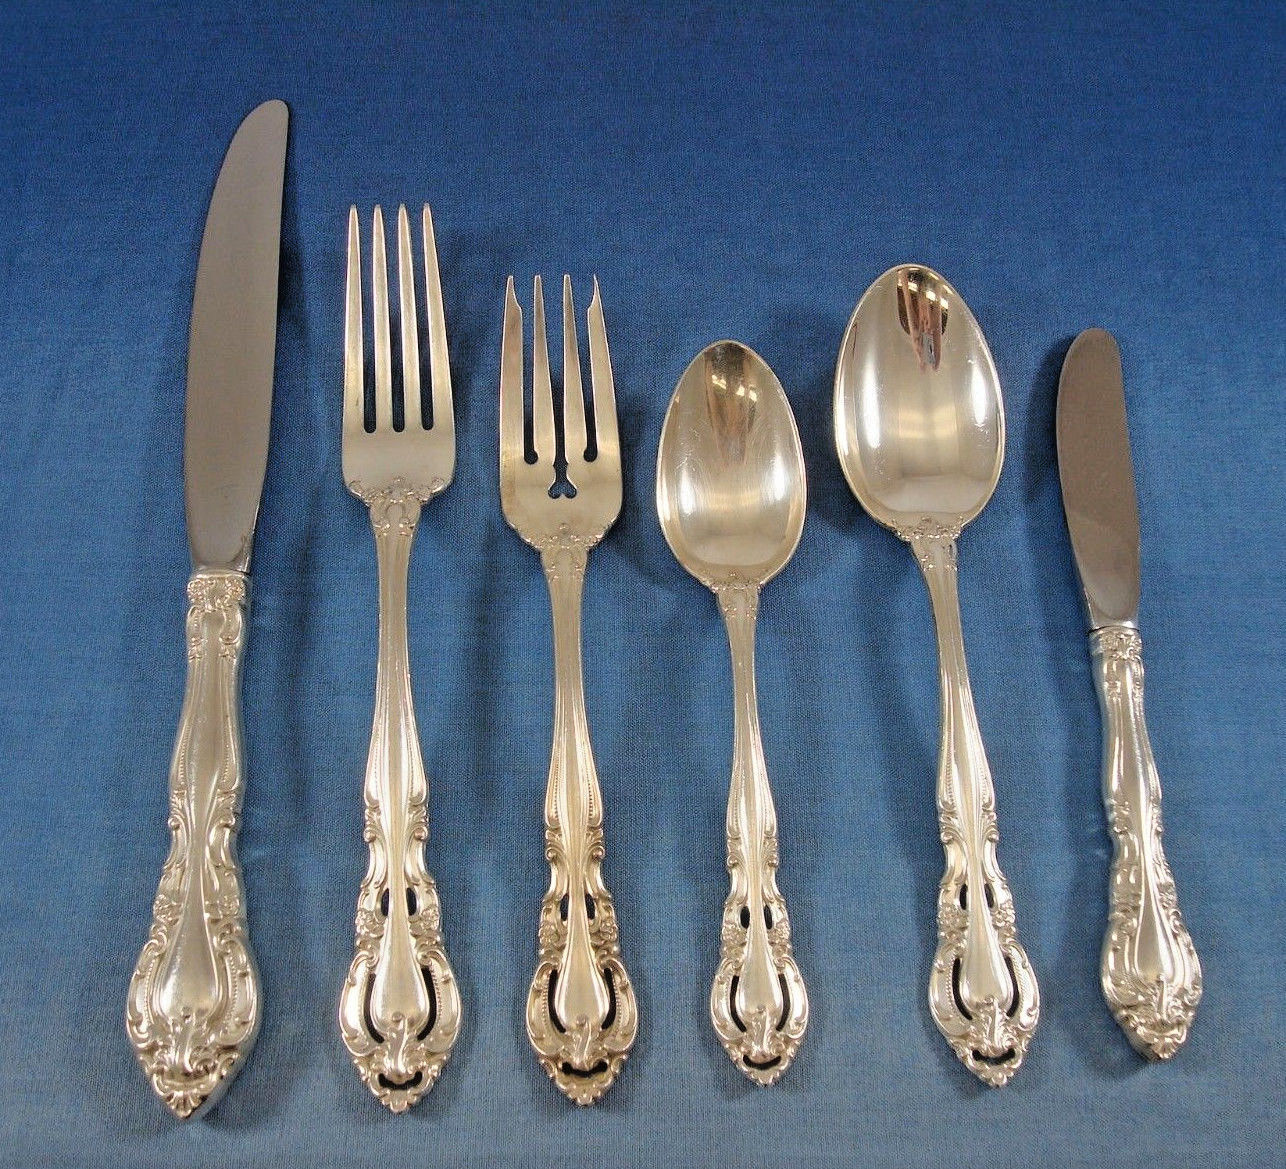 Primary image for Baronial New by Gorham Sterling Silver Flatware Set for 8 Service 52 Pieces